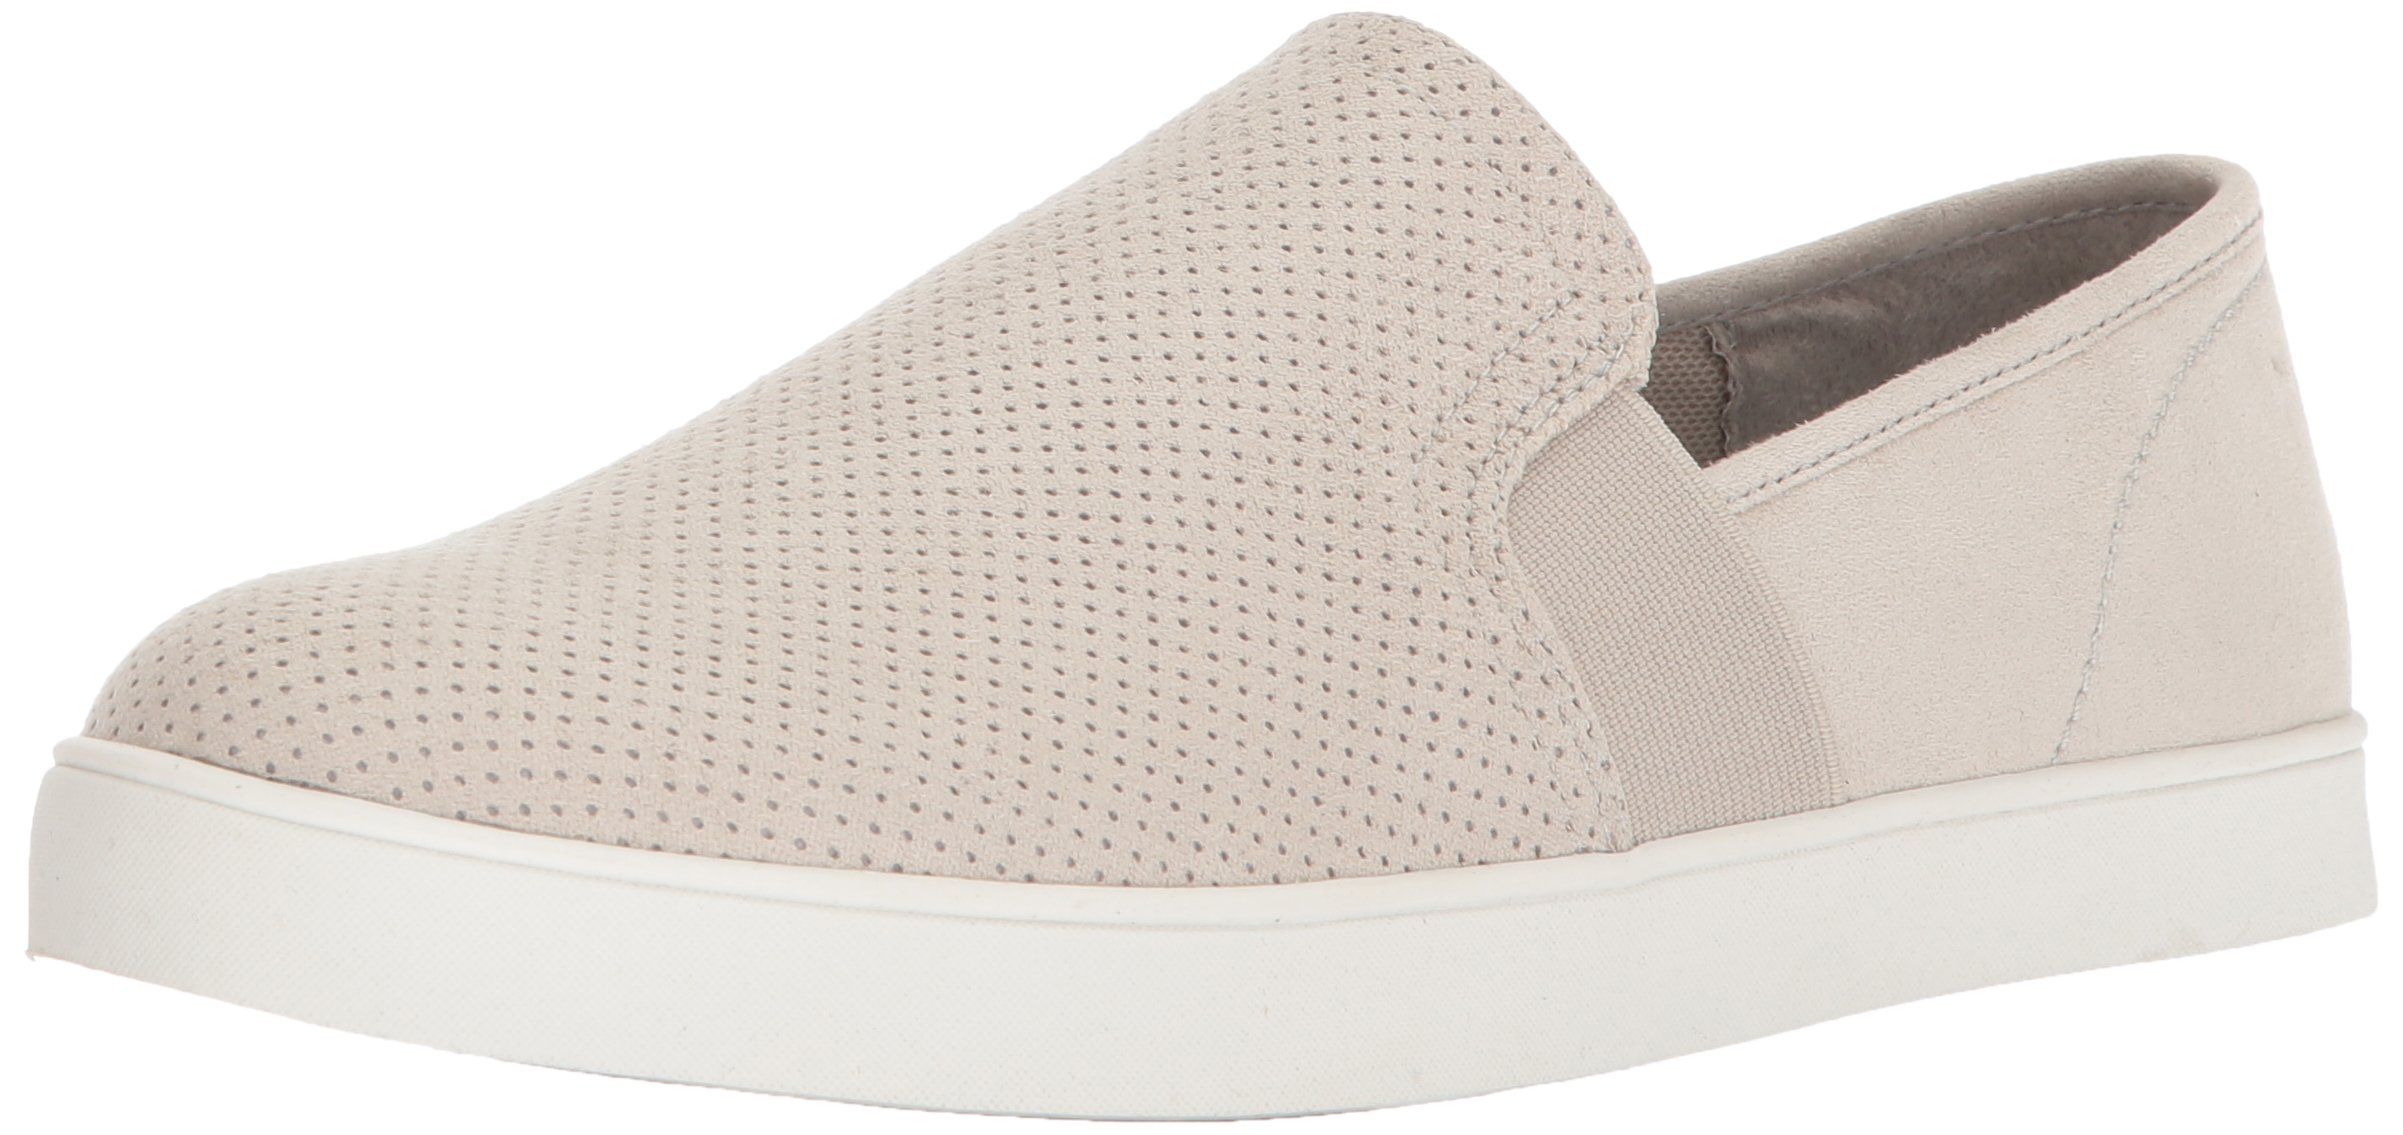 Dr. Scholl's Shoes Women's Luna Sneaker, Greige Microfiber Perforated, 9 M US